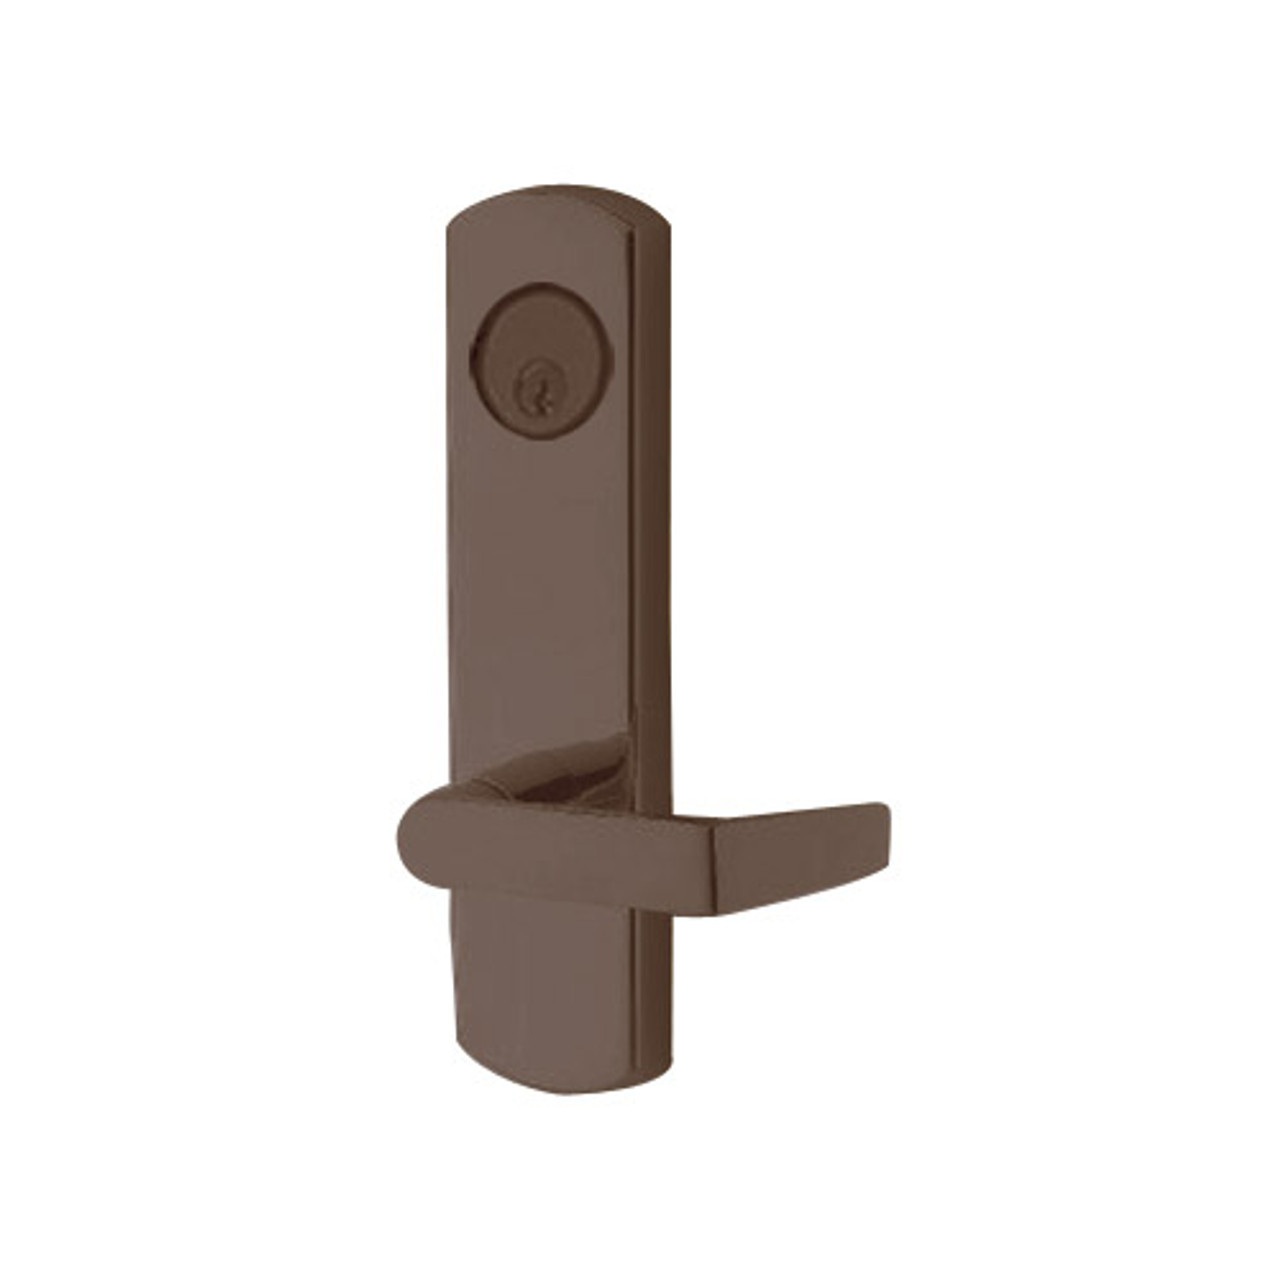 3080-03-0-34-US10B Adams Rite Standard Entry Trim with Square Lever in Oil Rubbed Bronze Finish